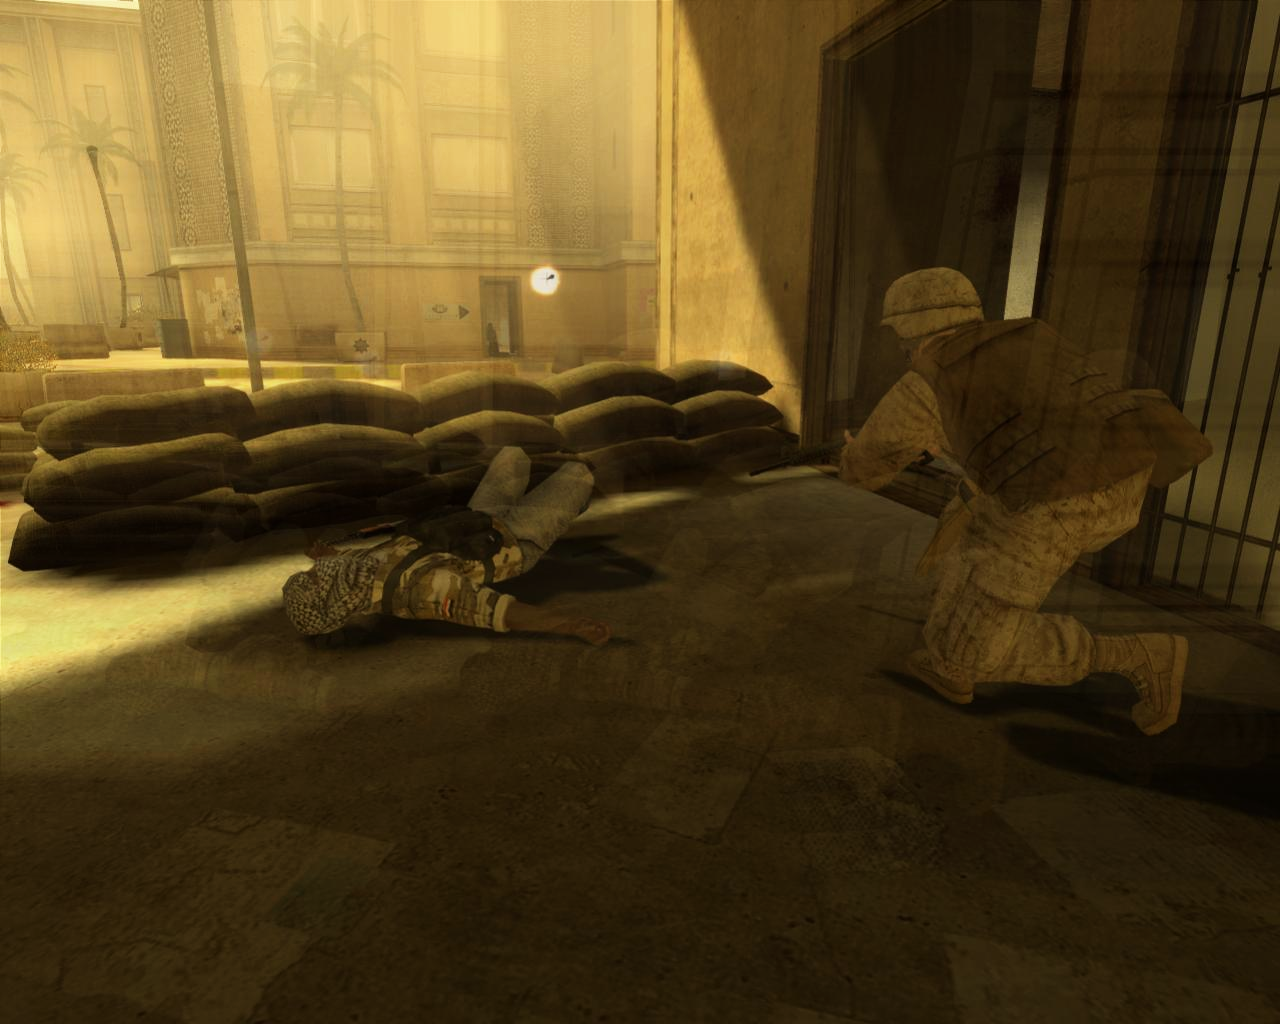 http://hysterxxx.free.fr/Games/Half%20Life%202/Insurgency/Screenshot%20Contest%20Entries/1/1%20contest.png